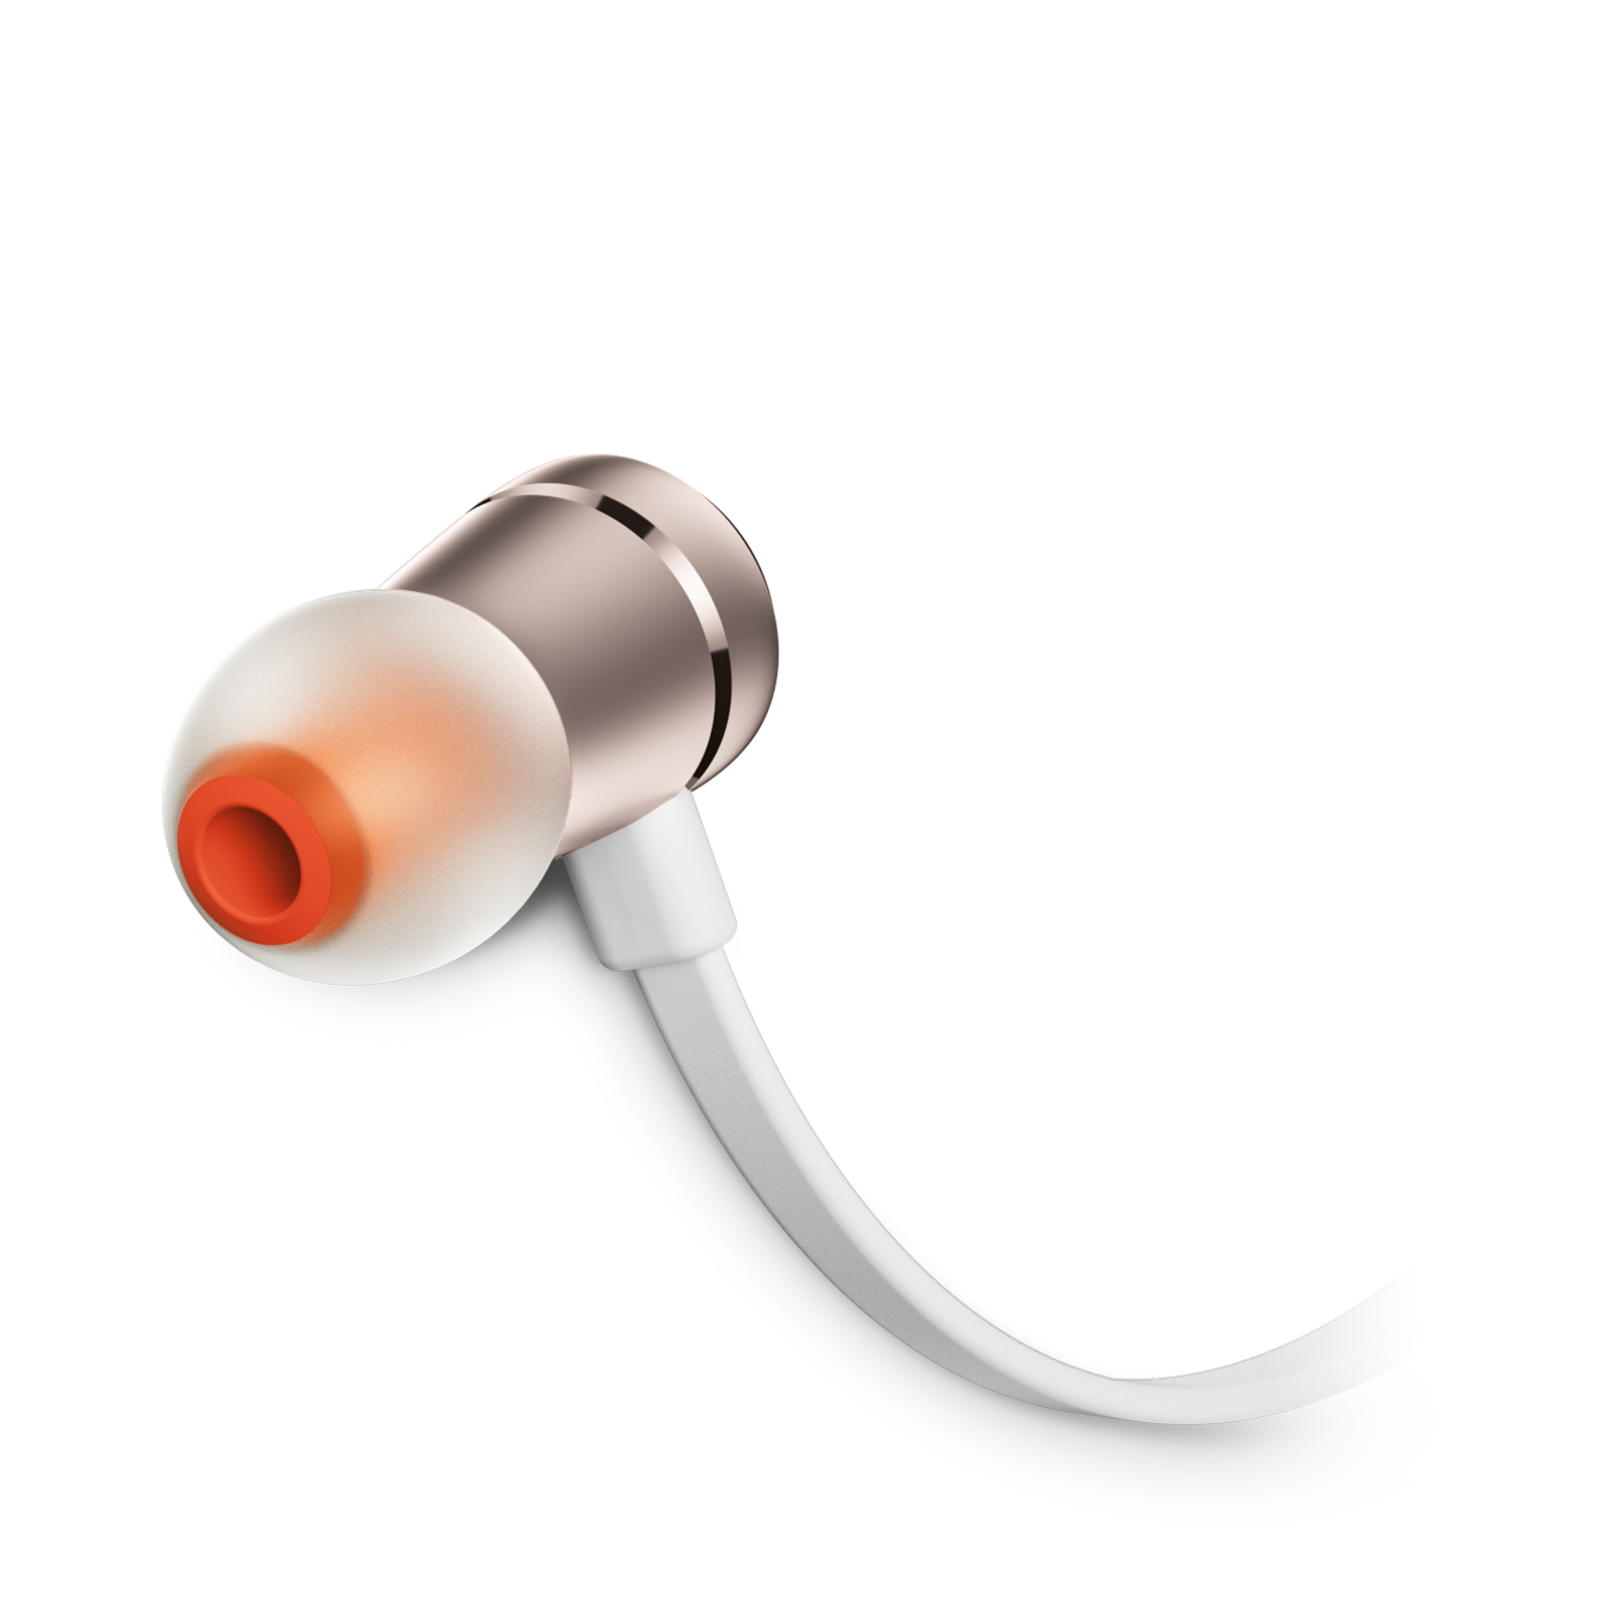 JBL TUNE 290 - Gold - In-ear headphones - Detailshot 3